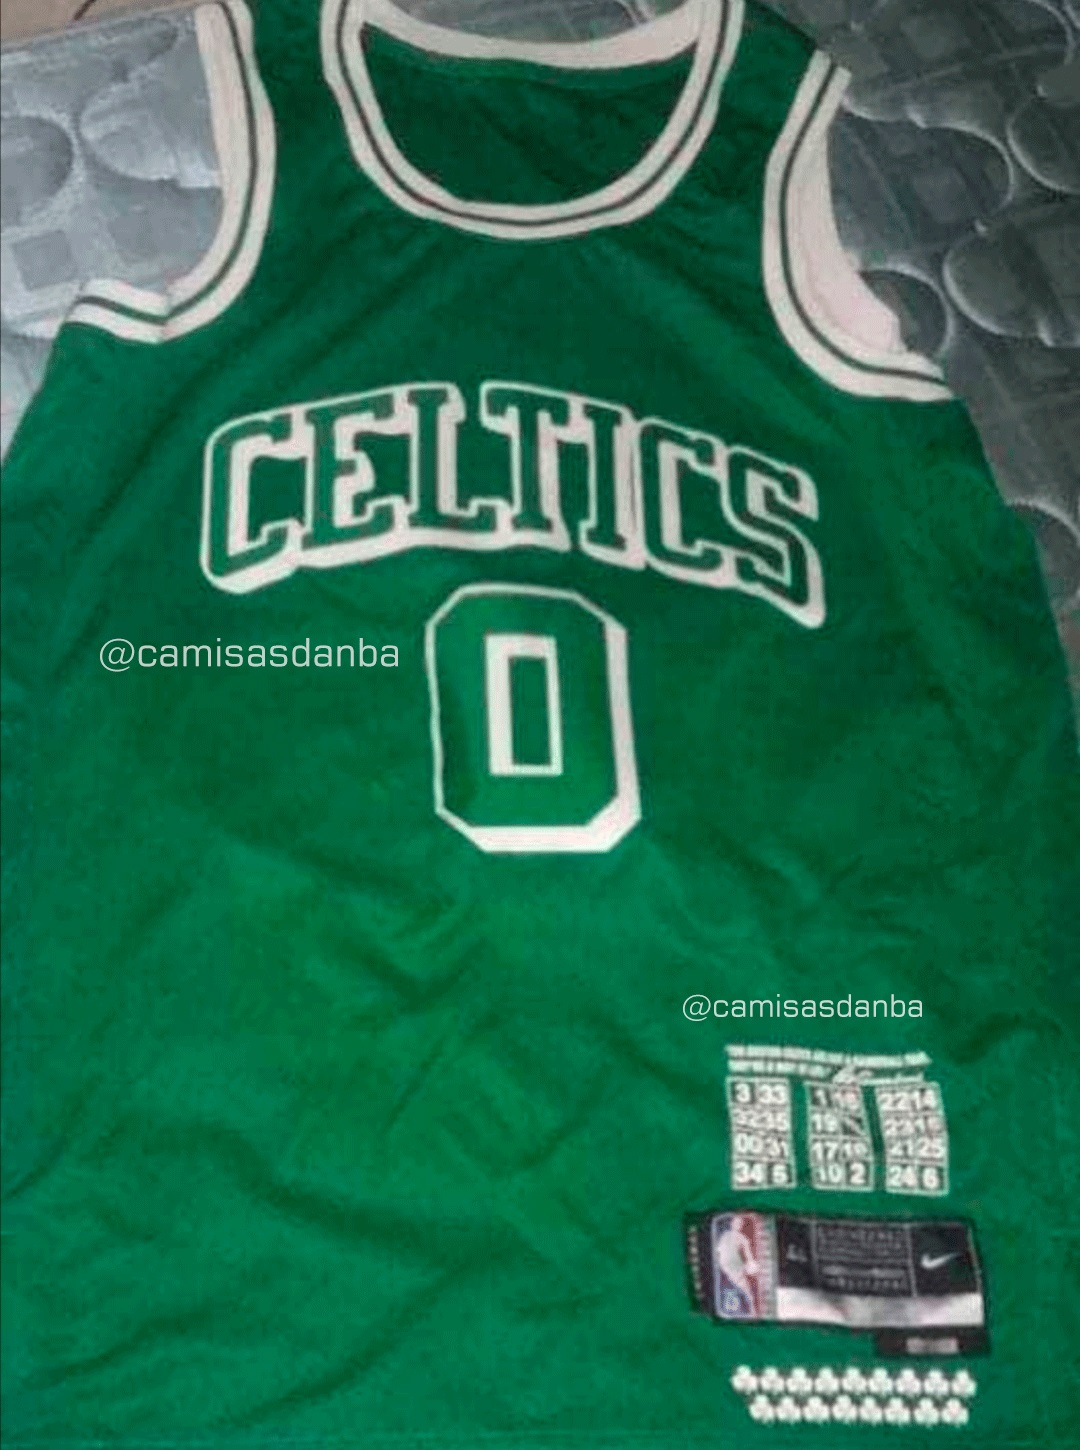 A primary picture of the Celtics City Version jersey